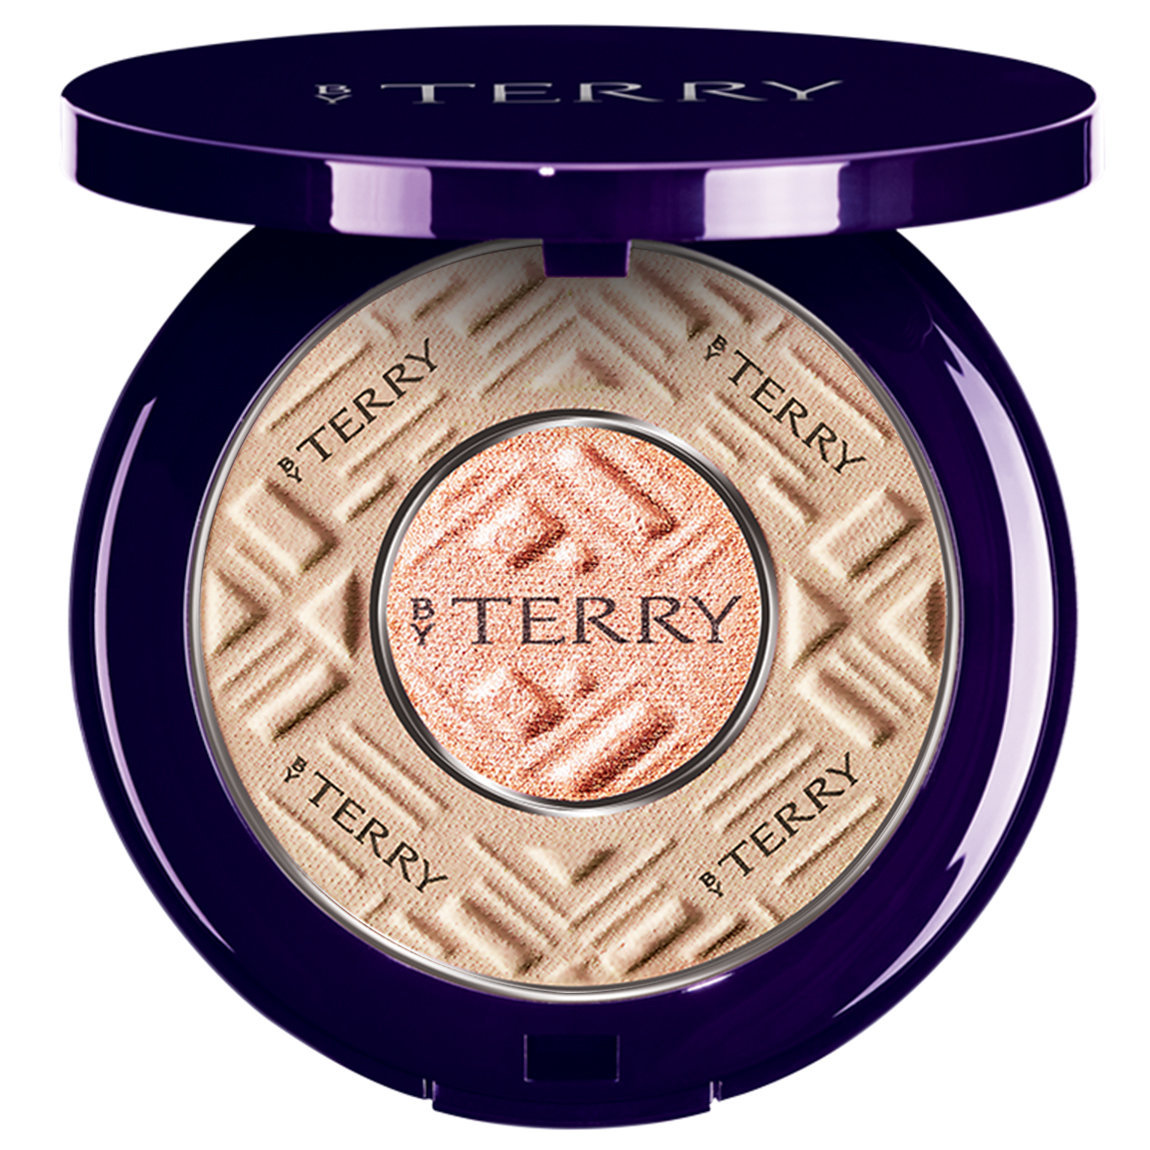 BY TERRY Compact-Expert Dual Powder 1 Ivory Fair alternative view 1 - product swatch.